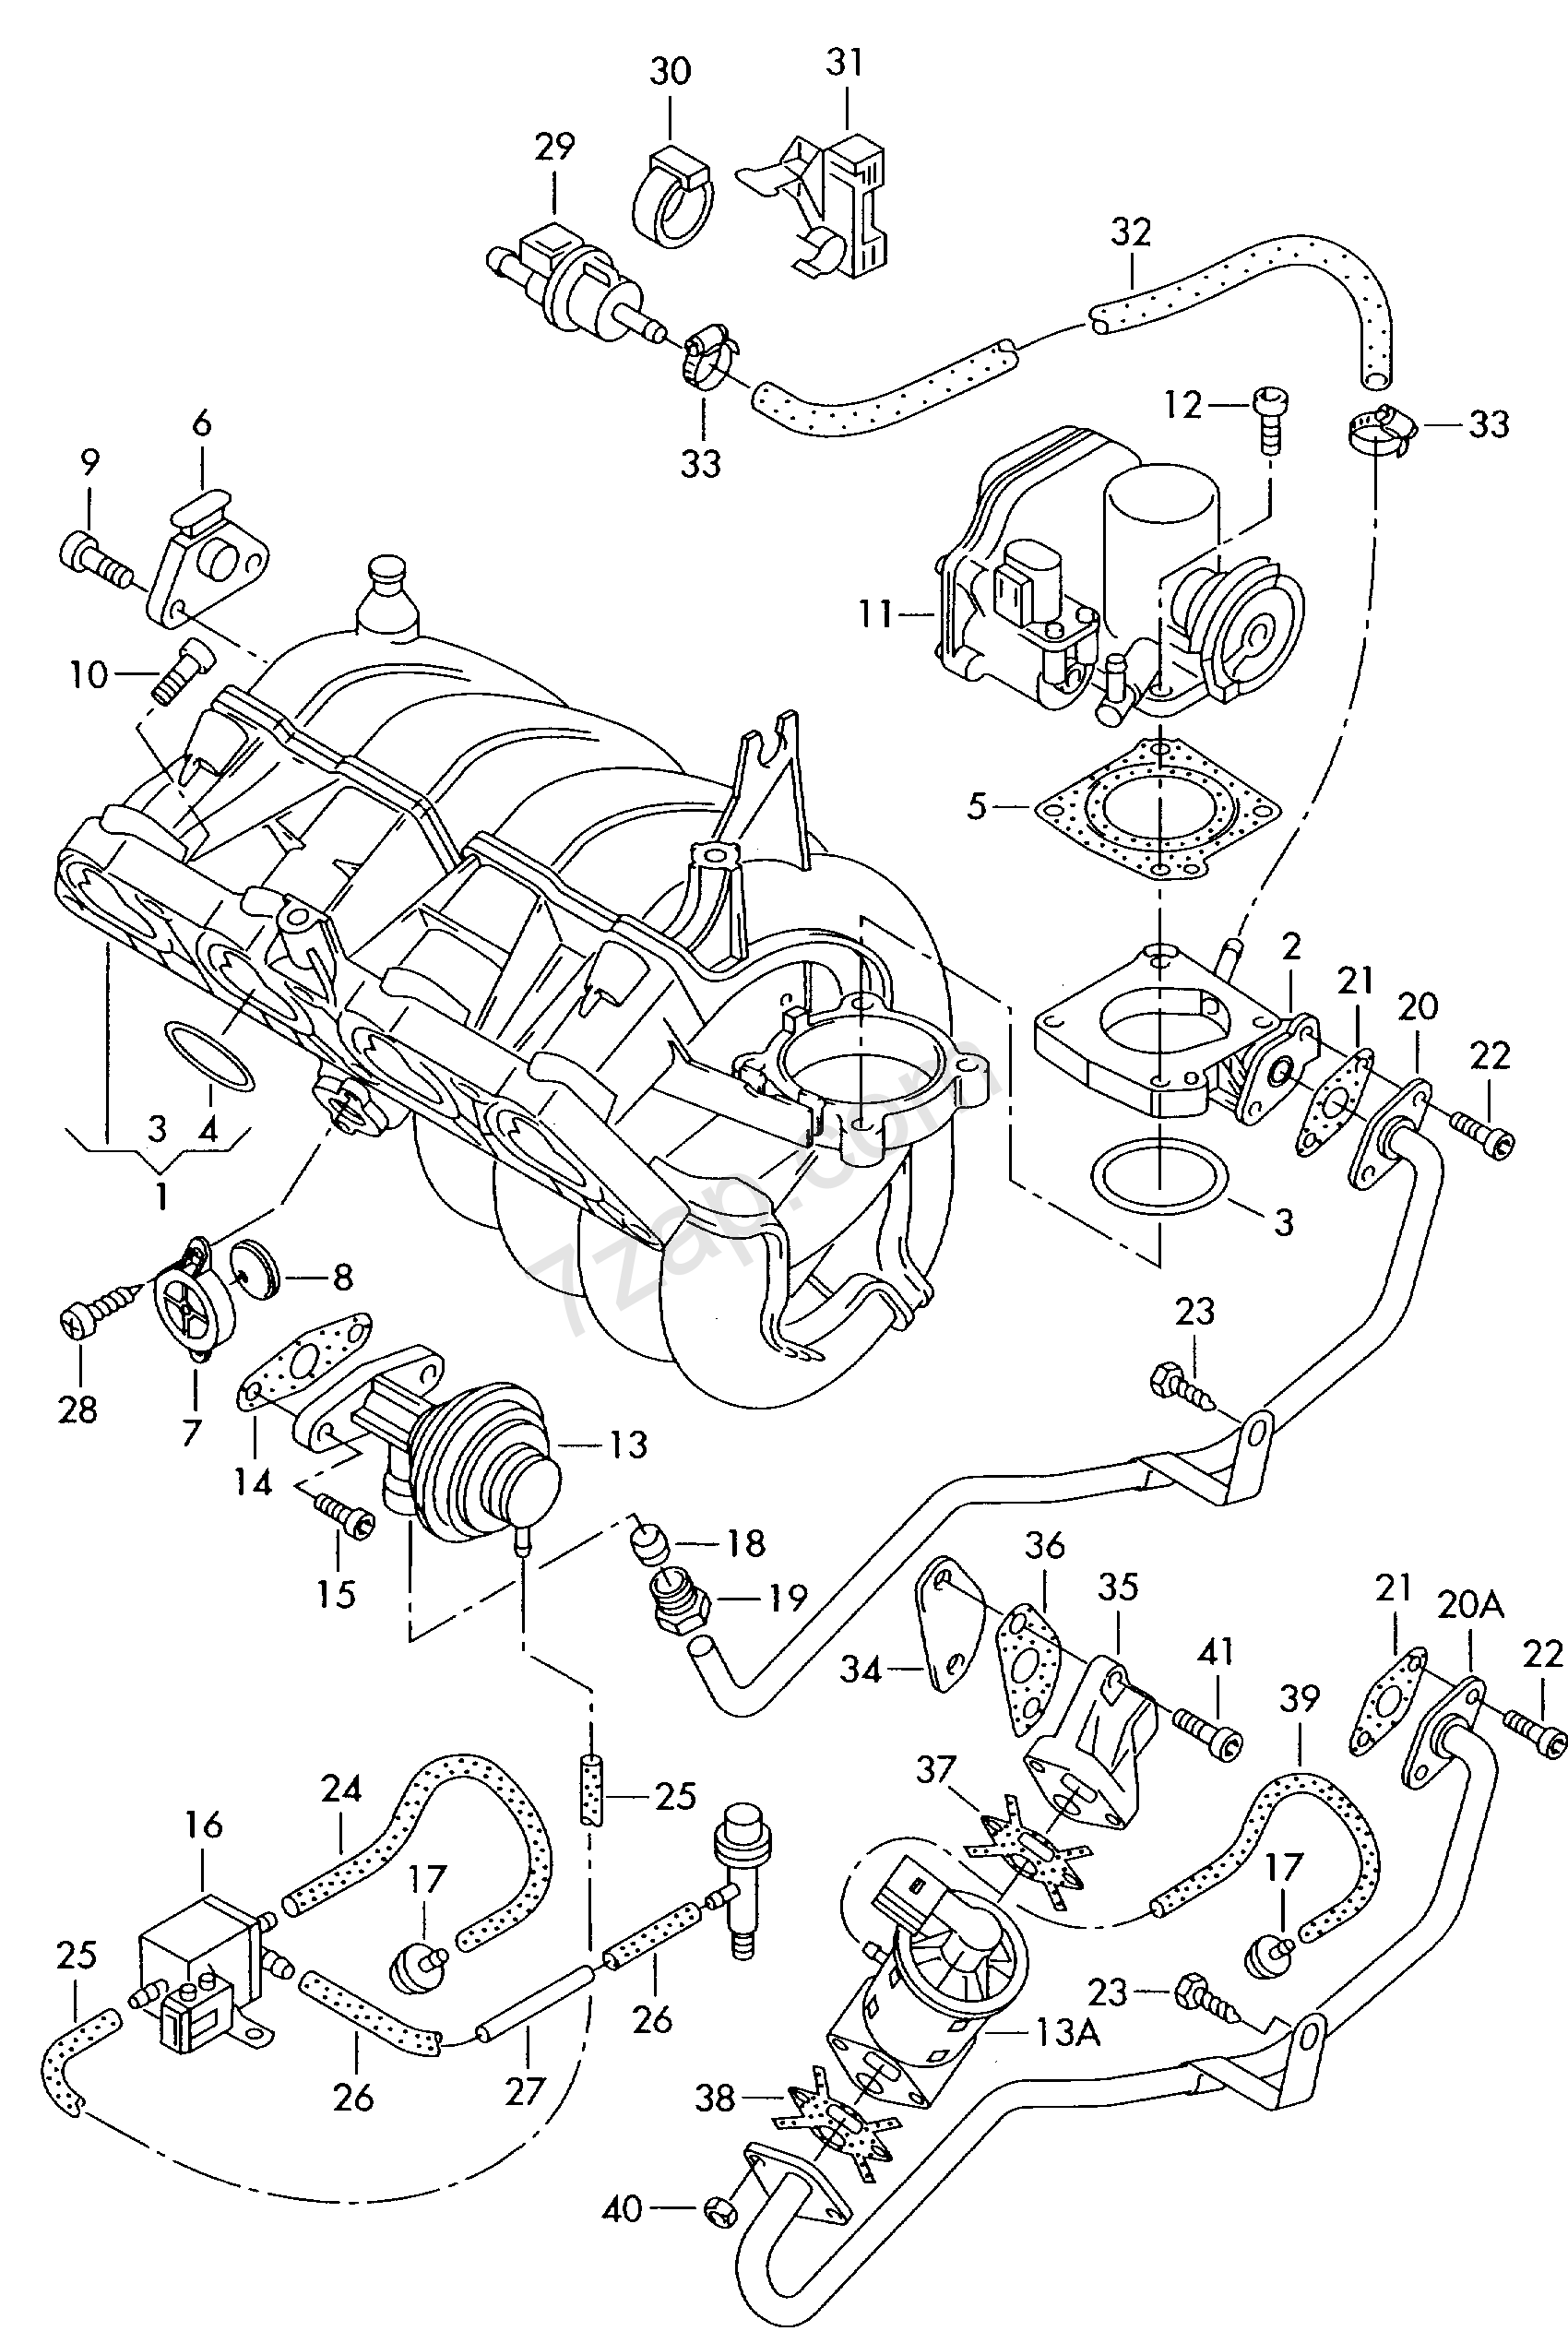 Intake System Vacuum Throttle Valve Contr Octavia Oct Skoda Engine Diagrams Octaviaoct China 2004 Year